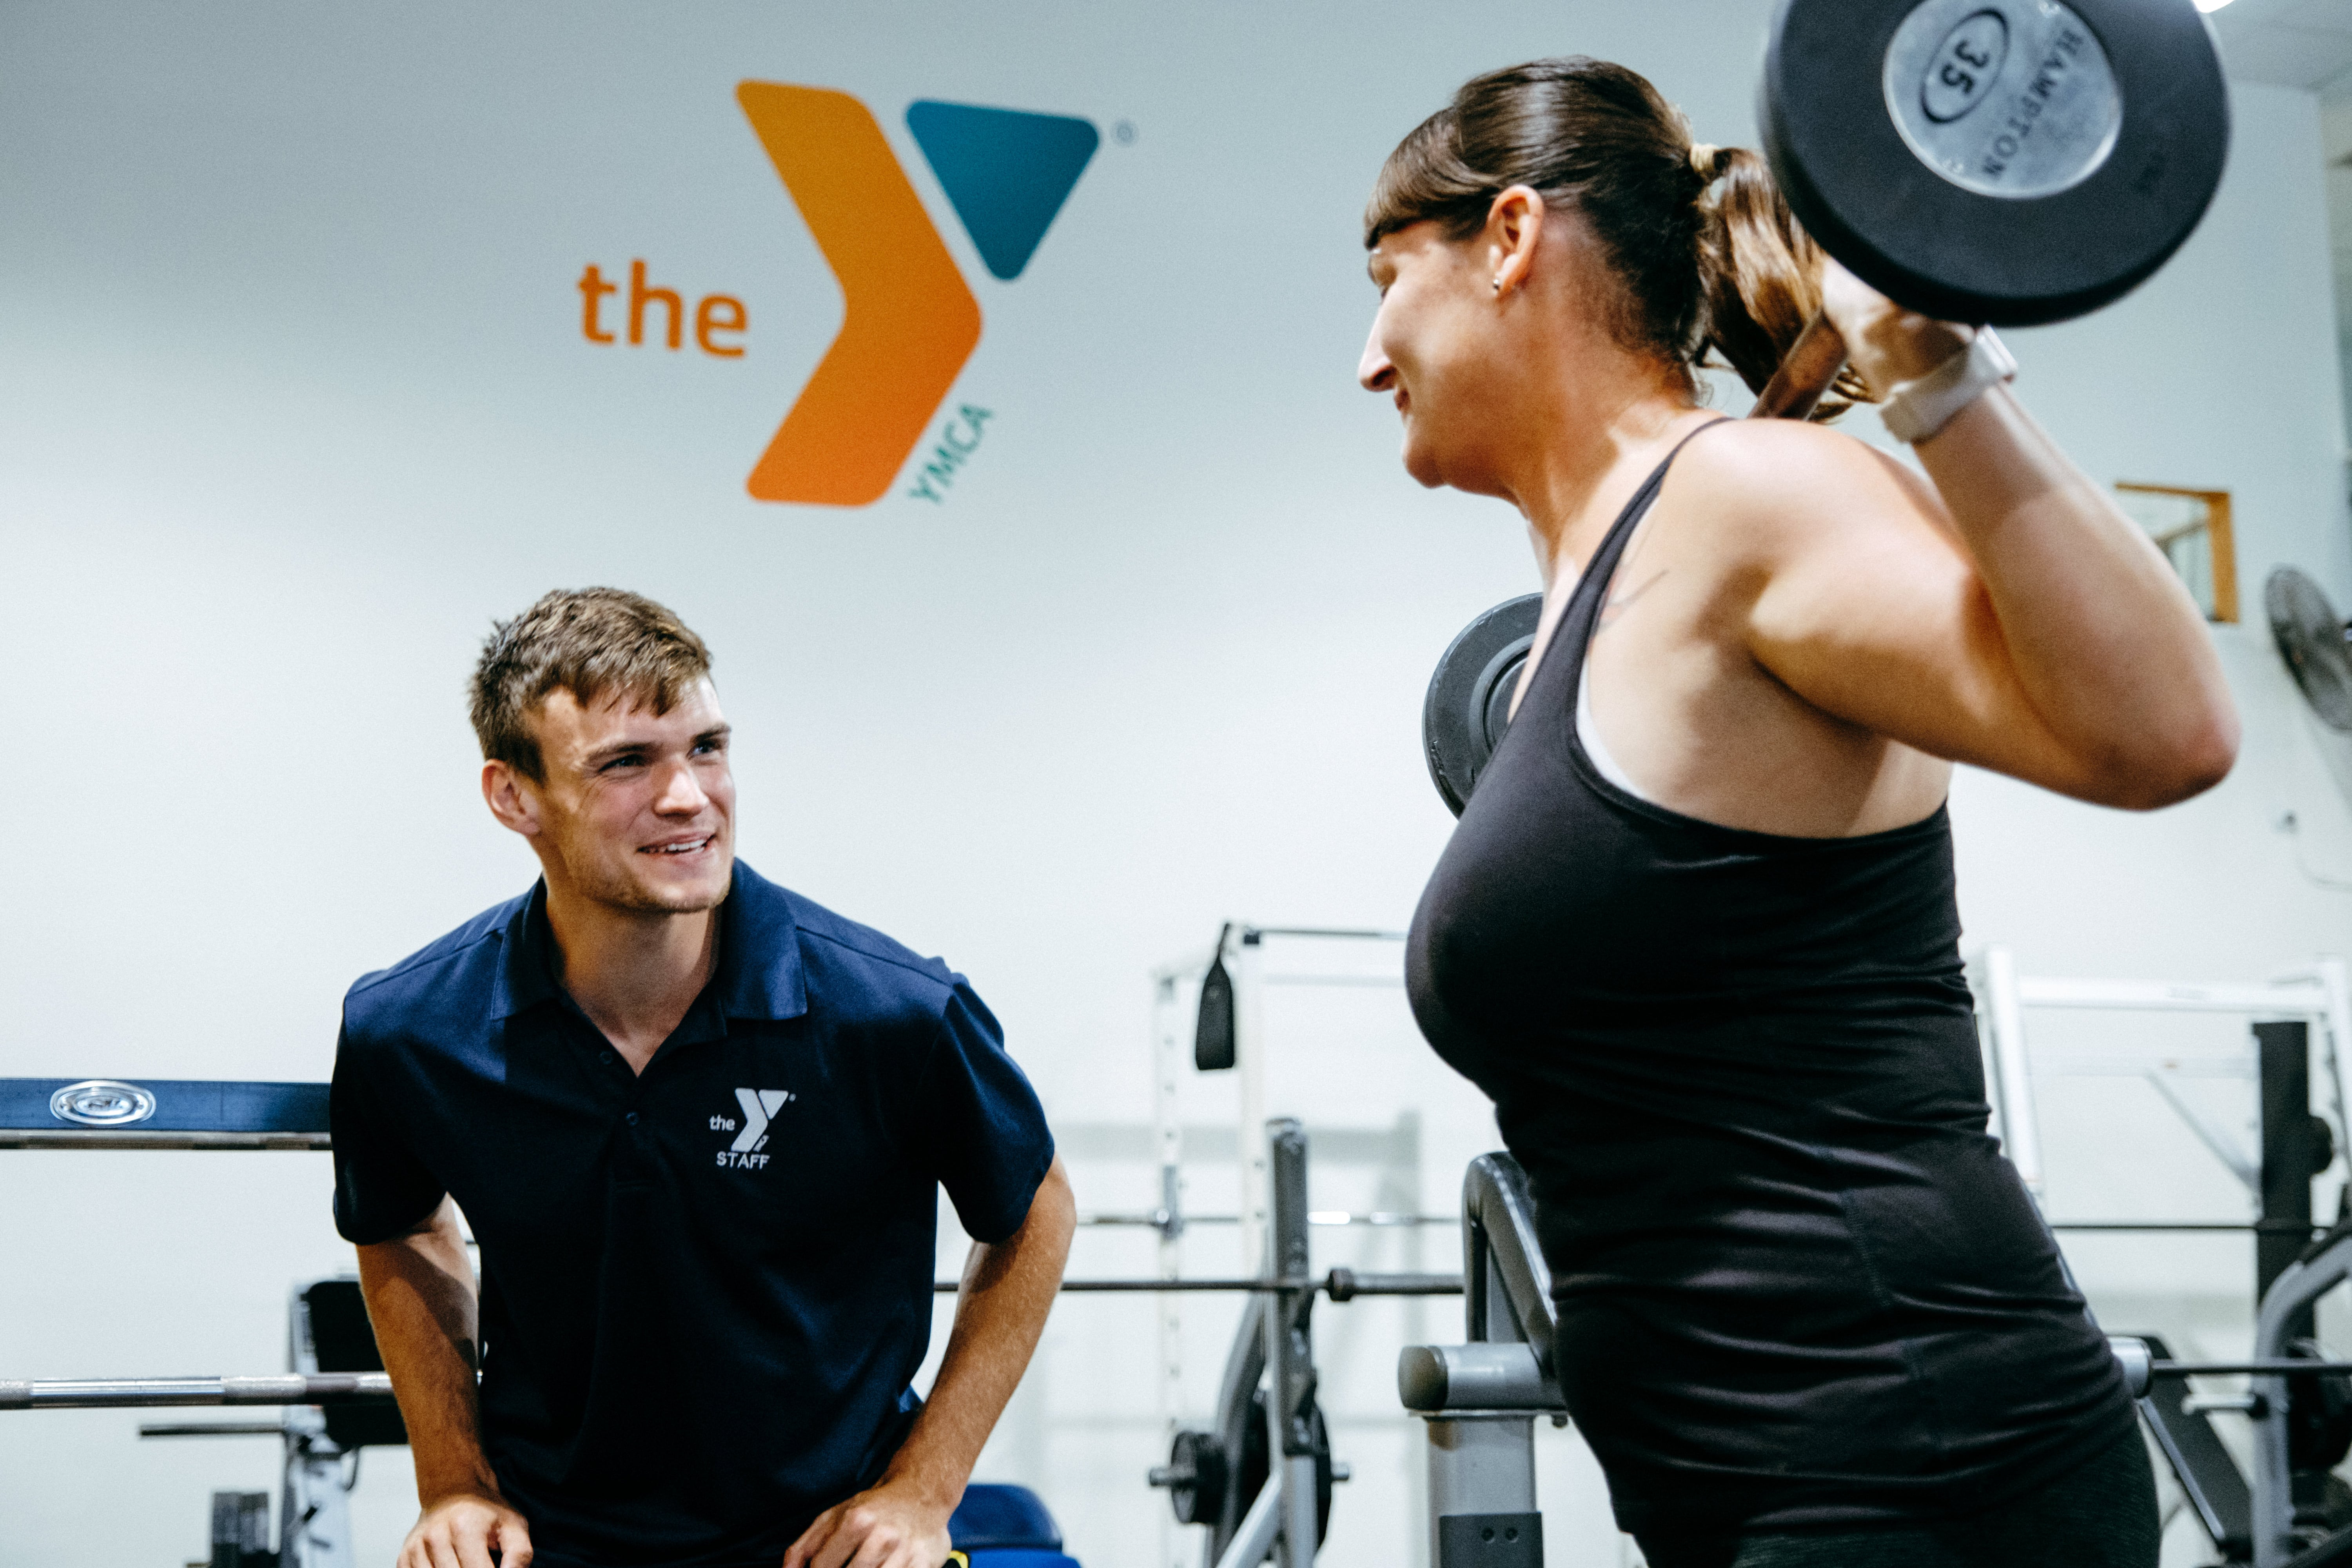 SLO Gym and Fitness Facility - Membership Information